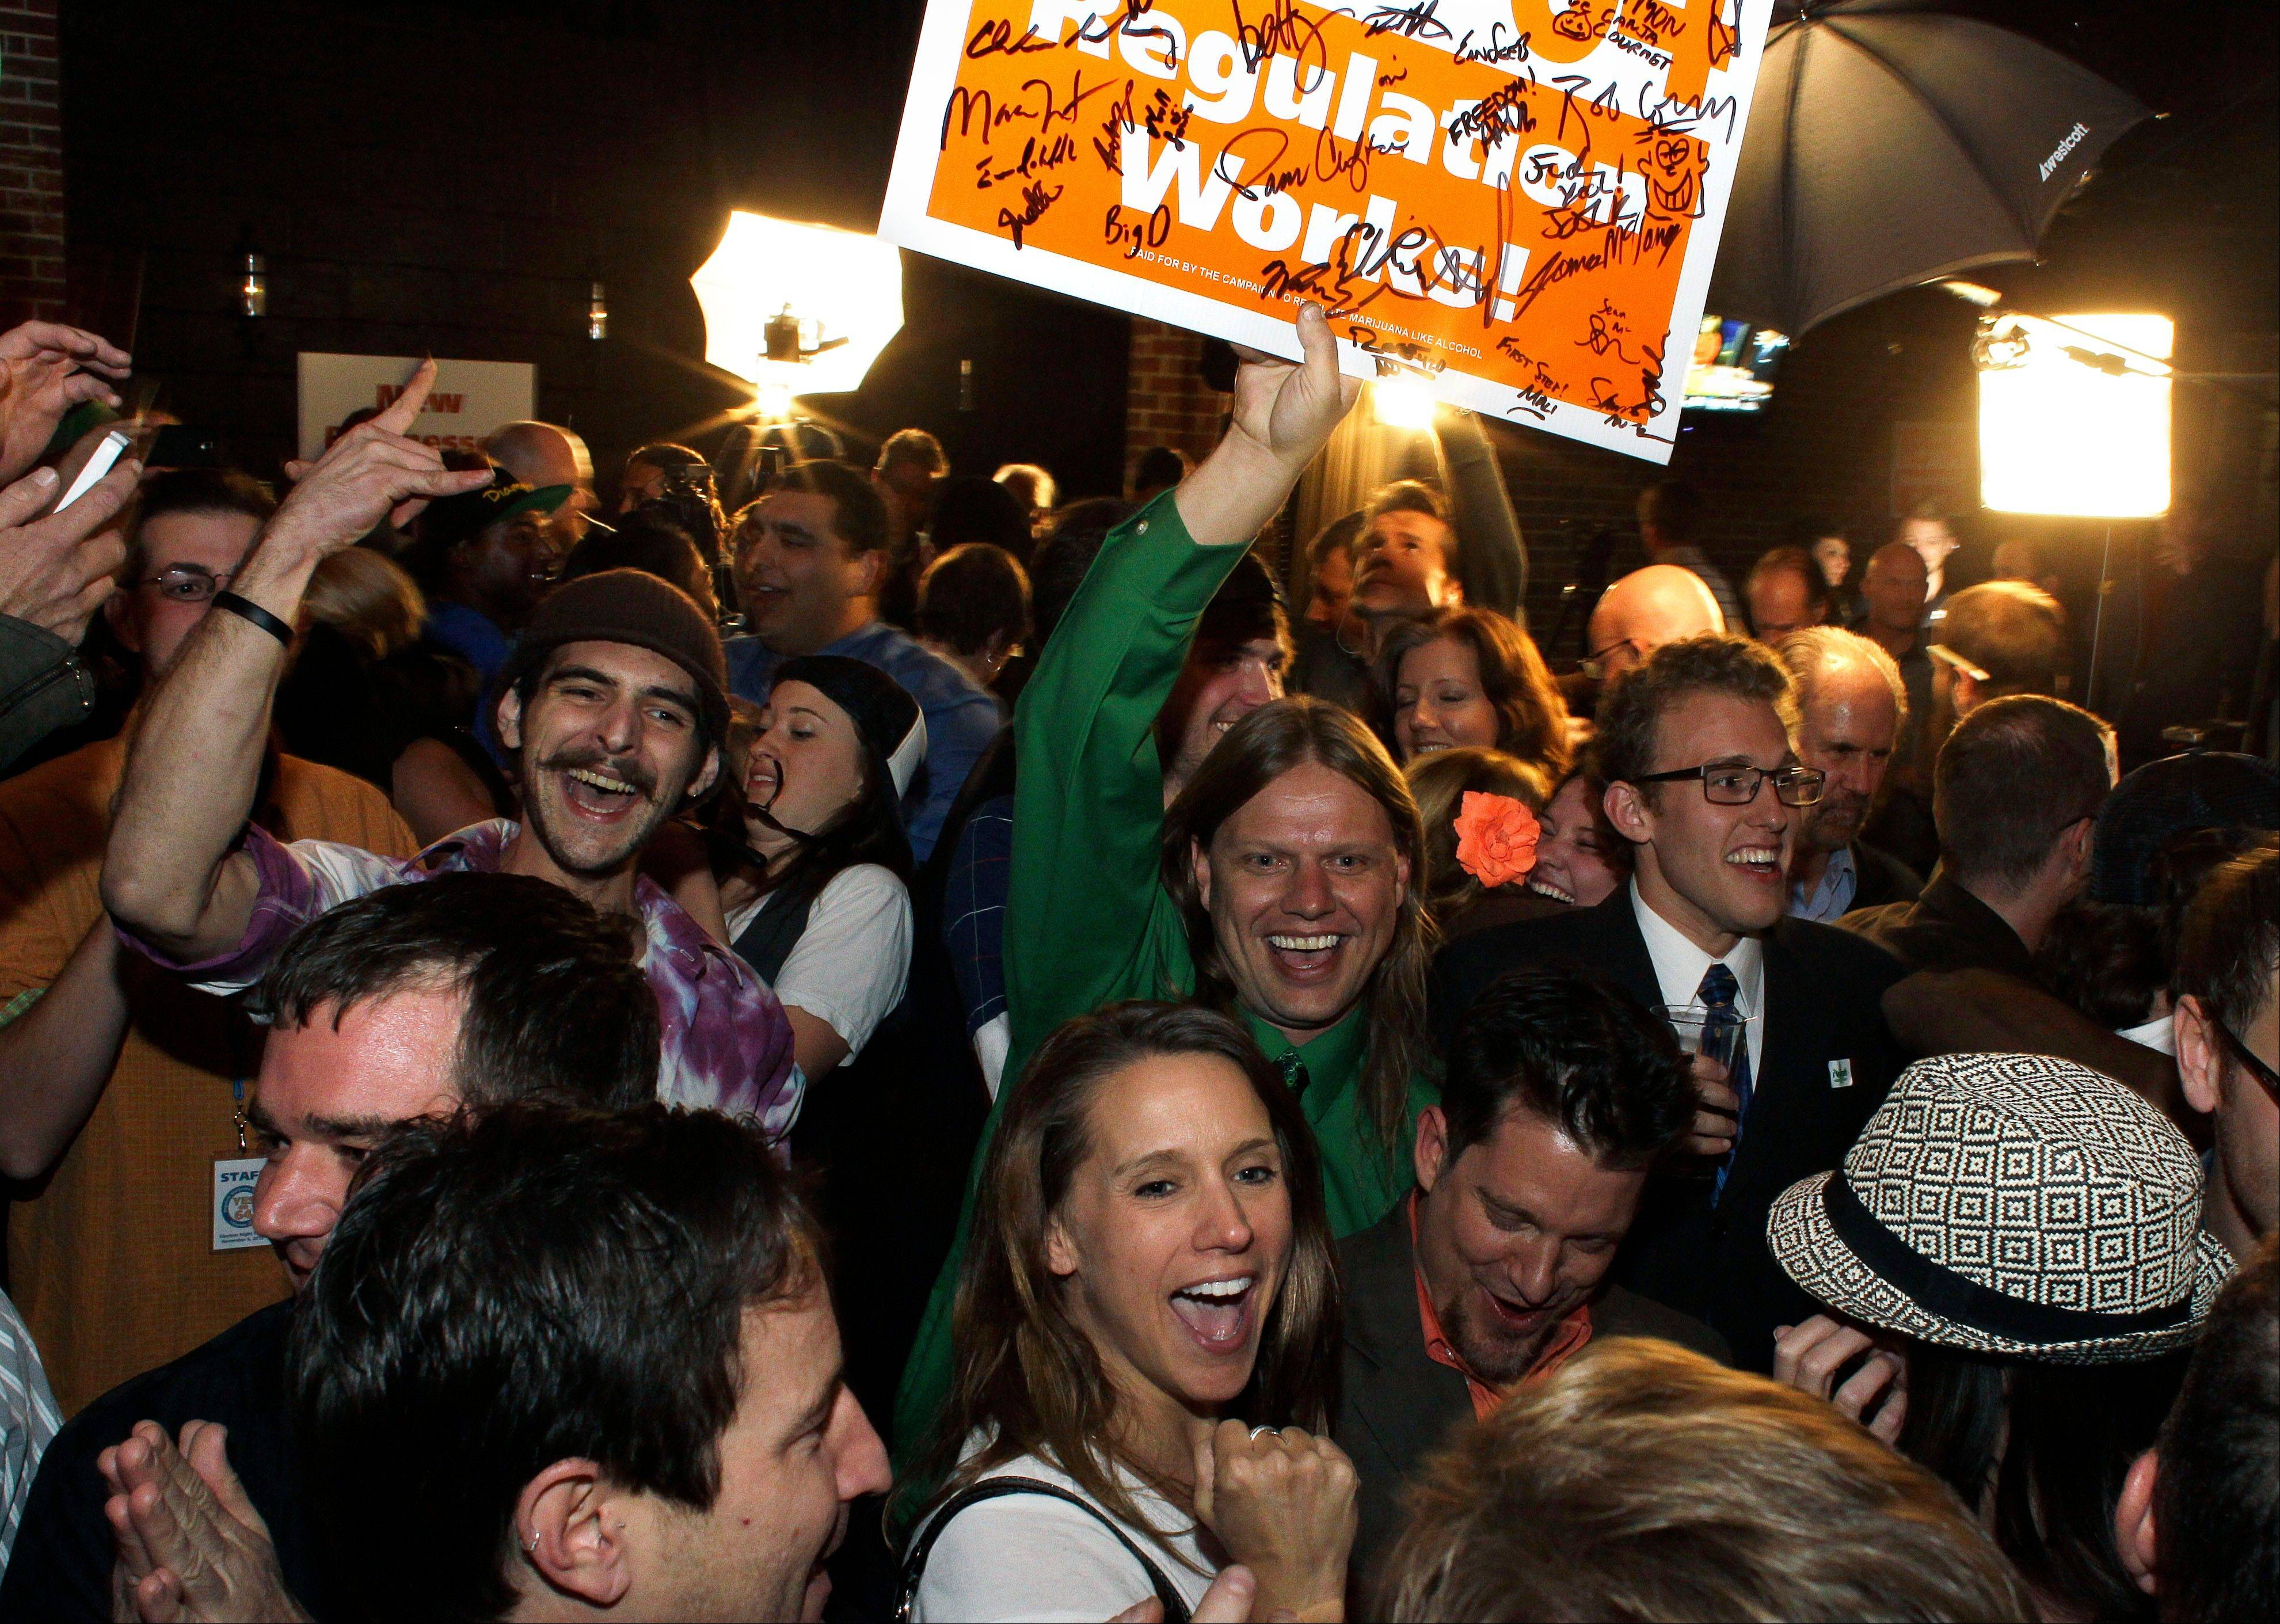 People attending an Amendment 64 watch party in a bar celebrate after a local television station announced the marijuana amendment's passage, in Denver, Colo., Tuesday, Nov. 6, 2012. The amendment would make it legal in Colorado for individuals to possess and for businesses to sell marijuana for recreational use.